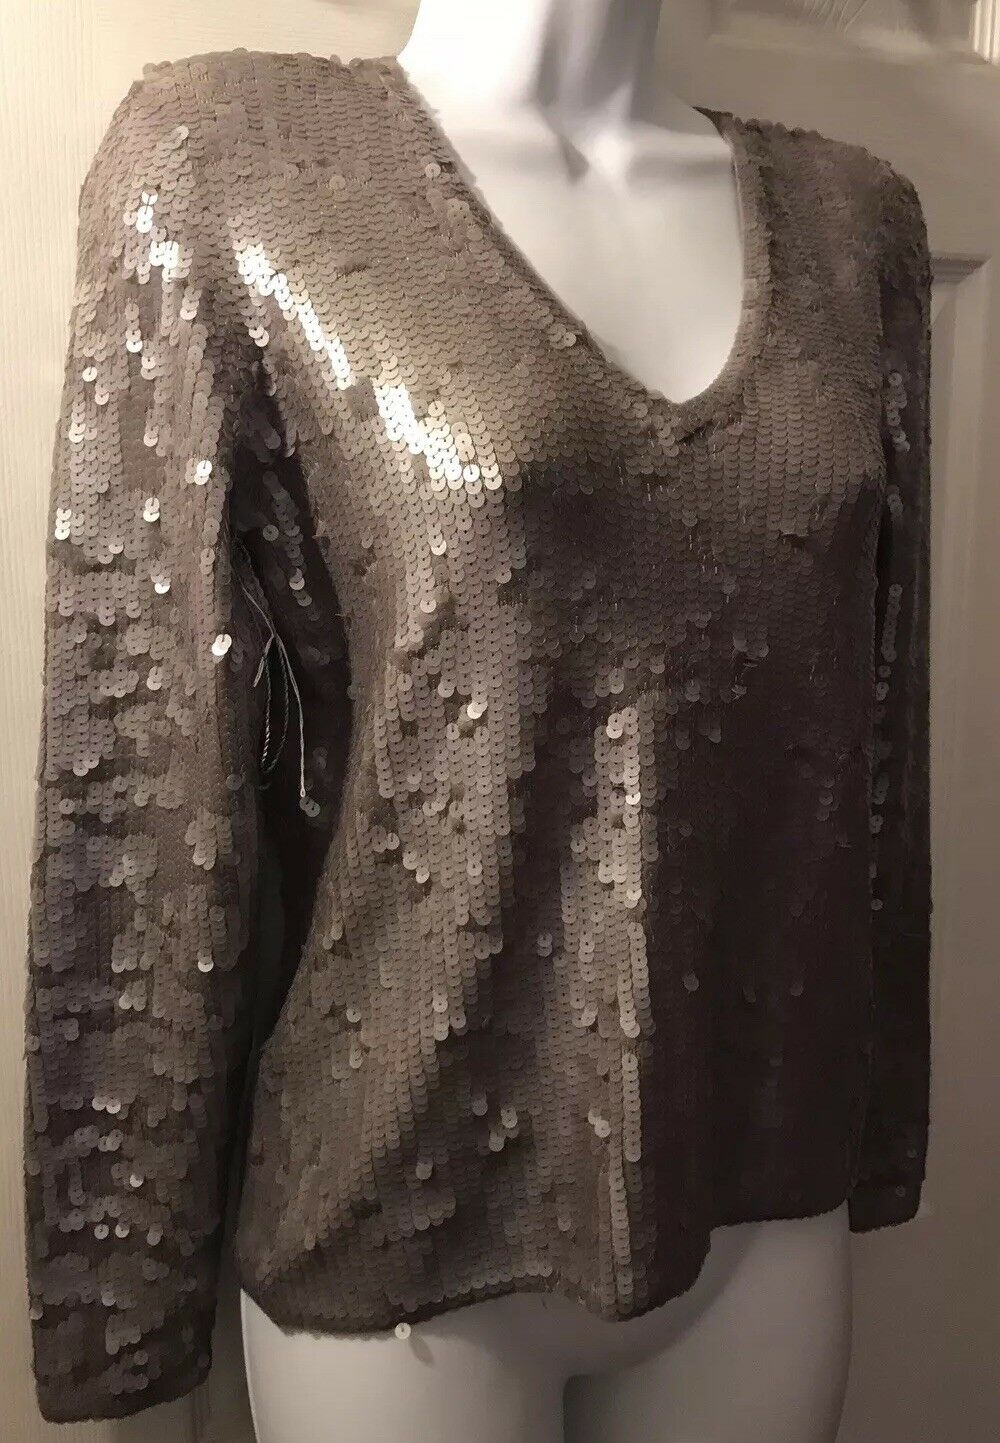 New  210 Women's WORTH New York York York Sweater Taupe Brown Sequin Knit Silk Sz P Petite d94c6d